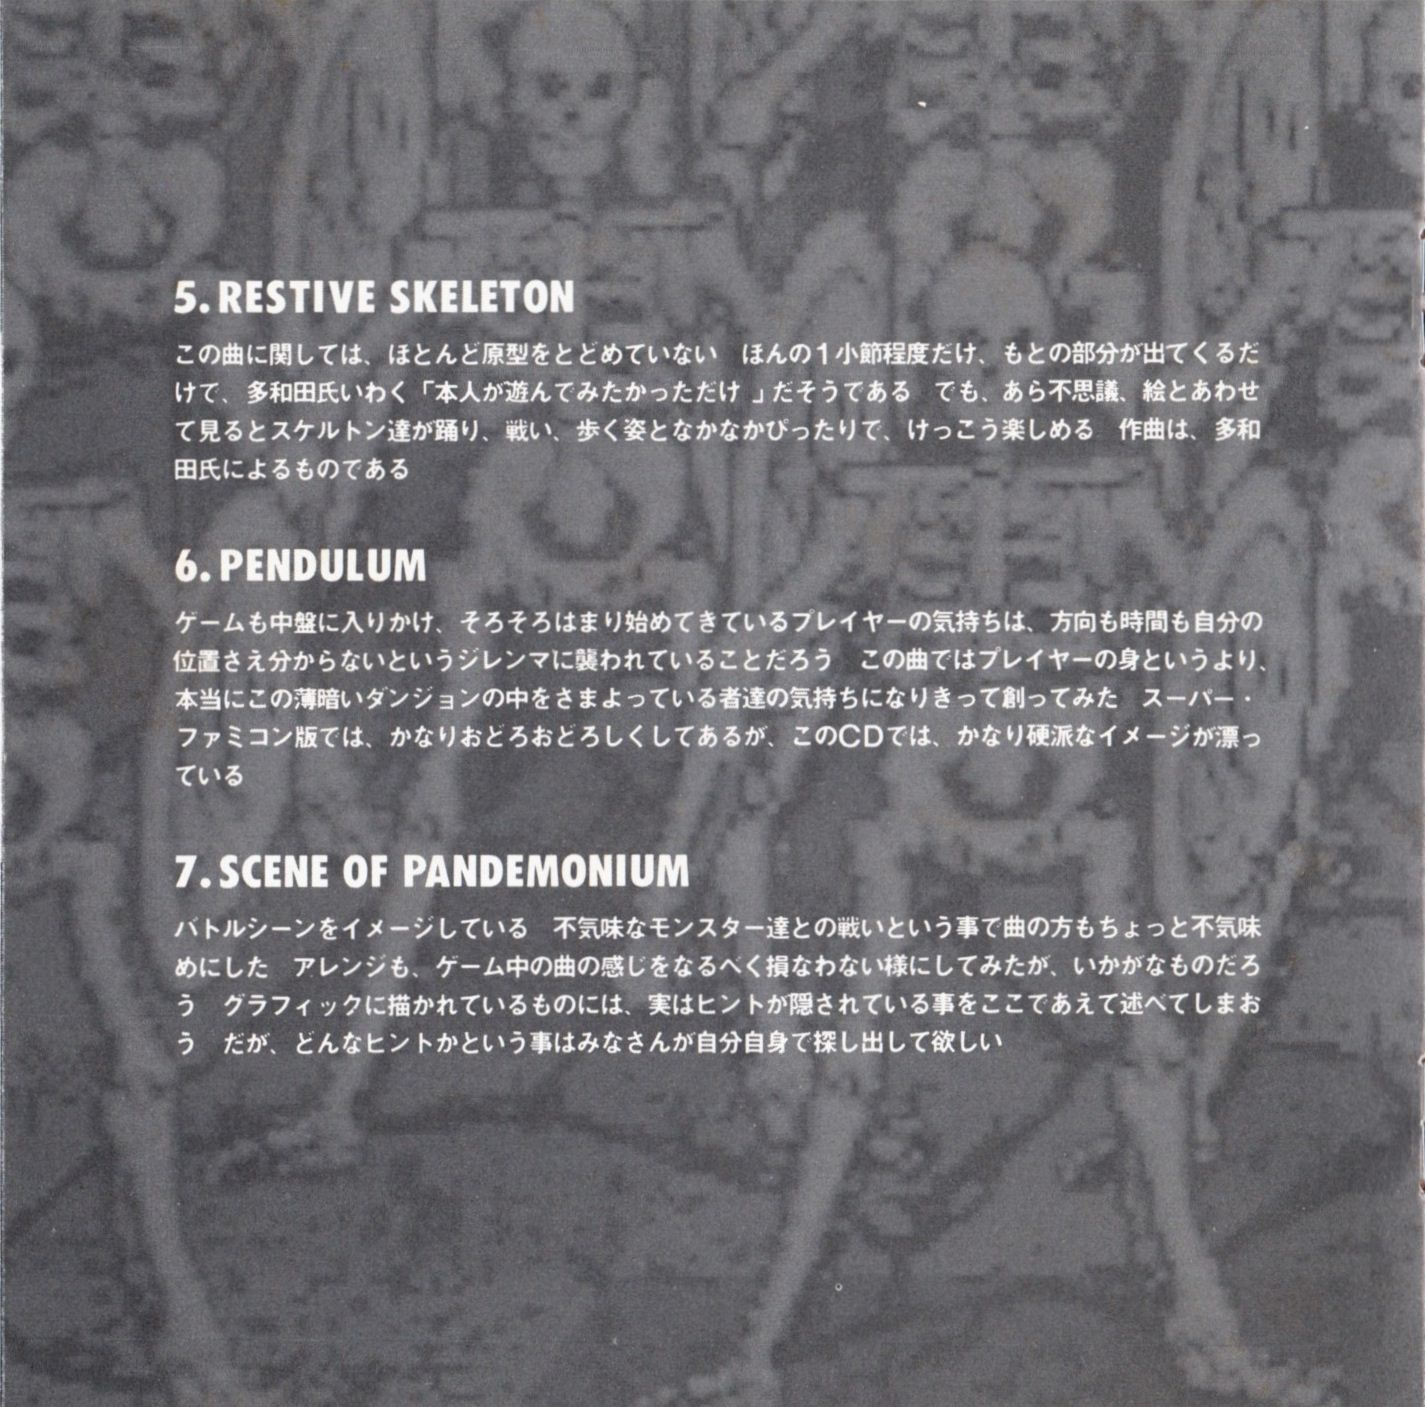 Audio CD - Super Dungeon Master - JP - Booklet - Page 006 - Scan